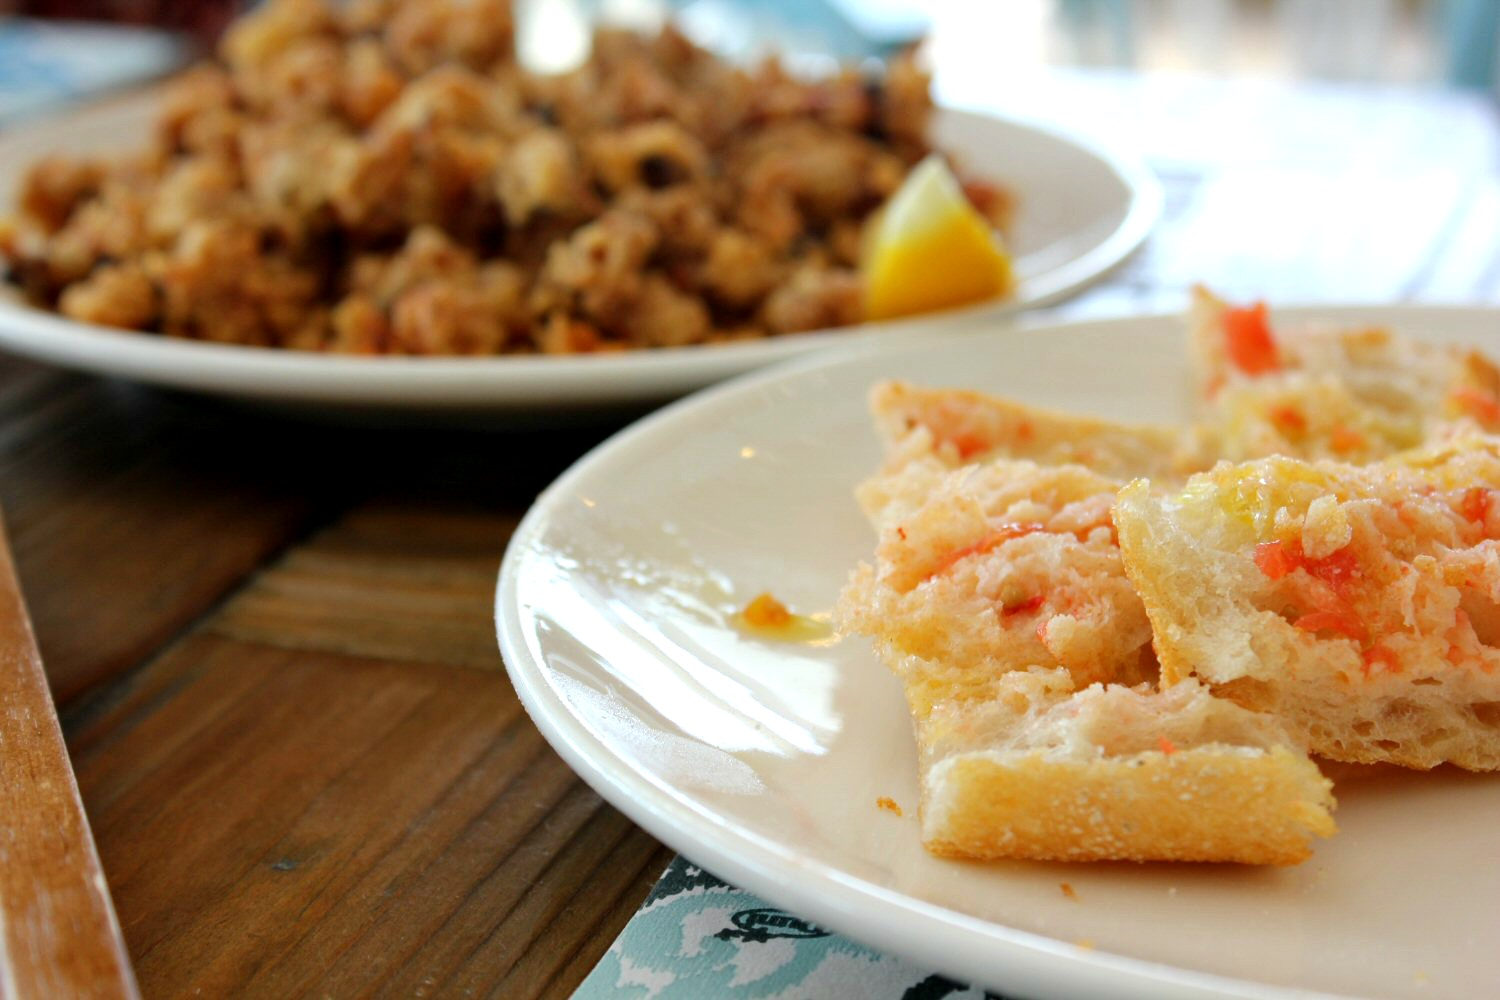 Seafood and tomato bread. My photo tour of Costa Barcelona